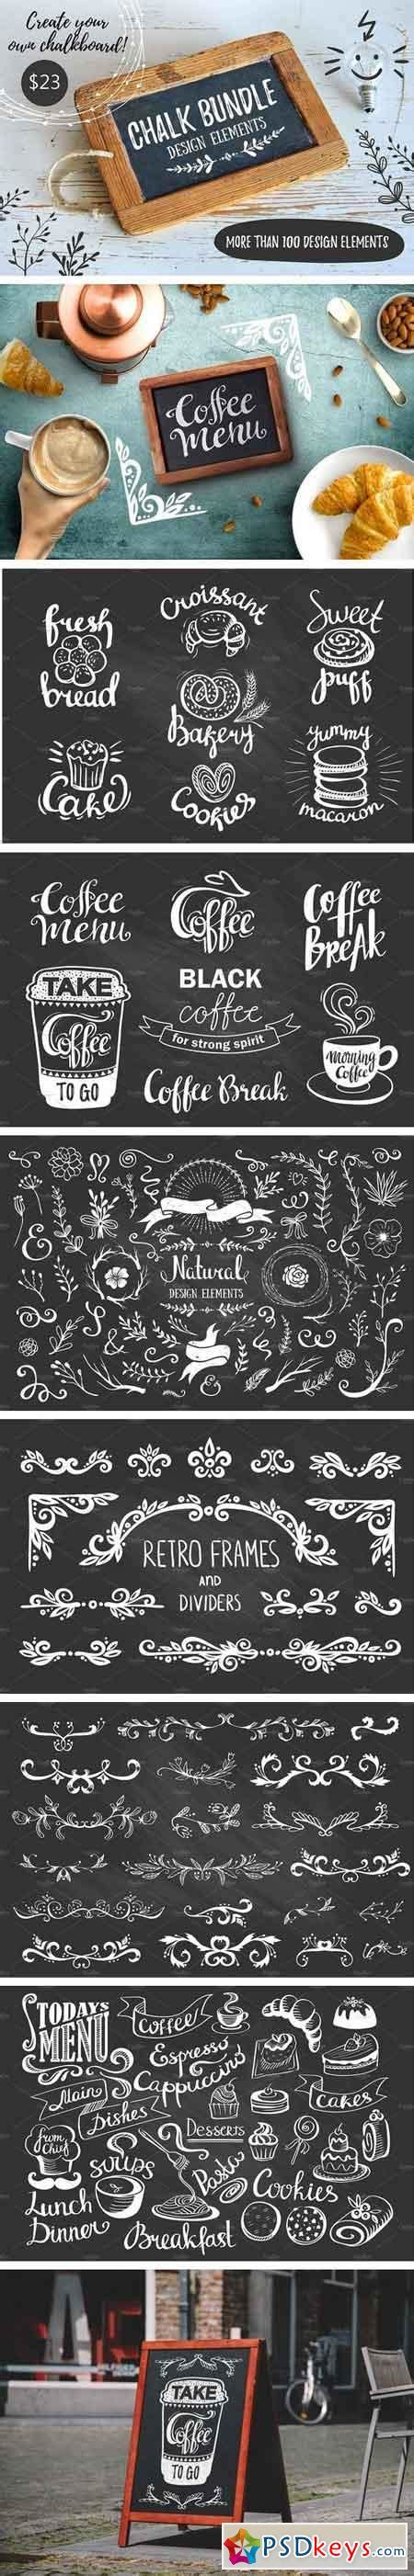 design elements bundle text effects 187 free download photoshop vector stock image